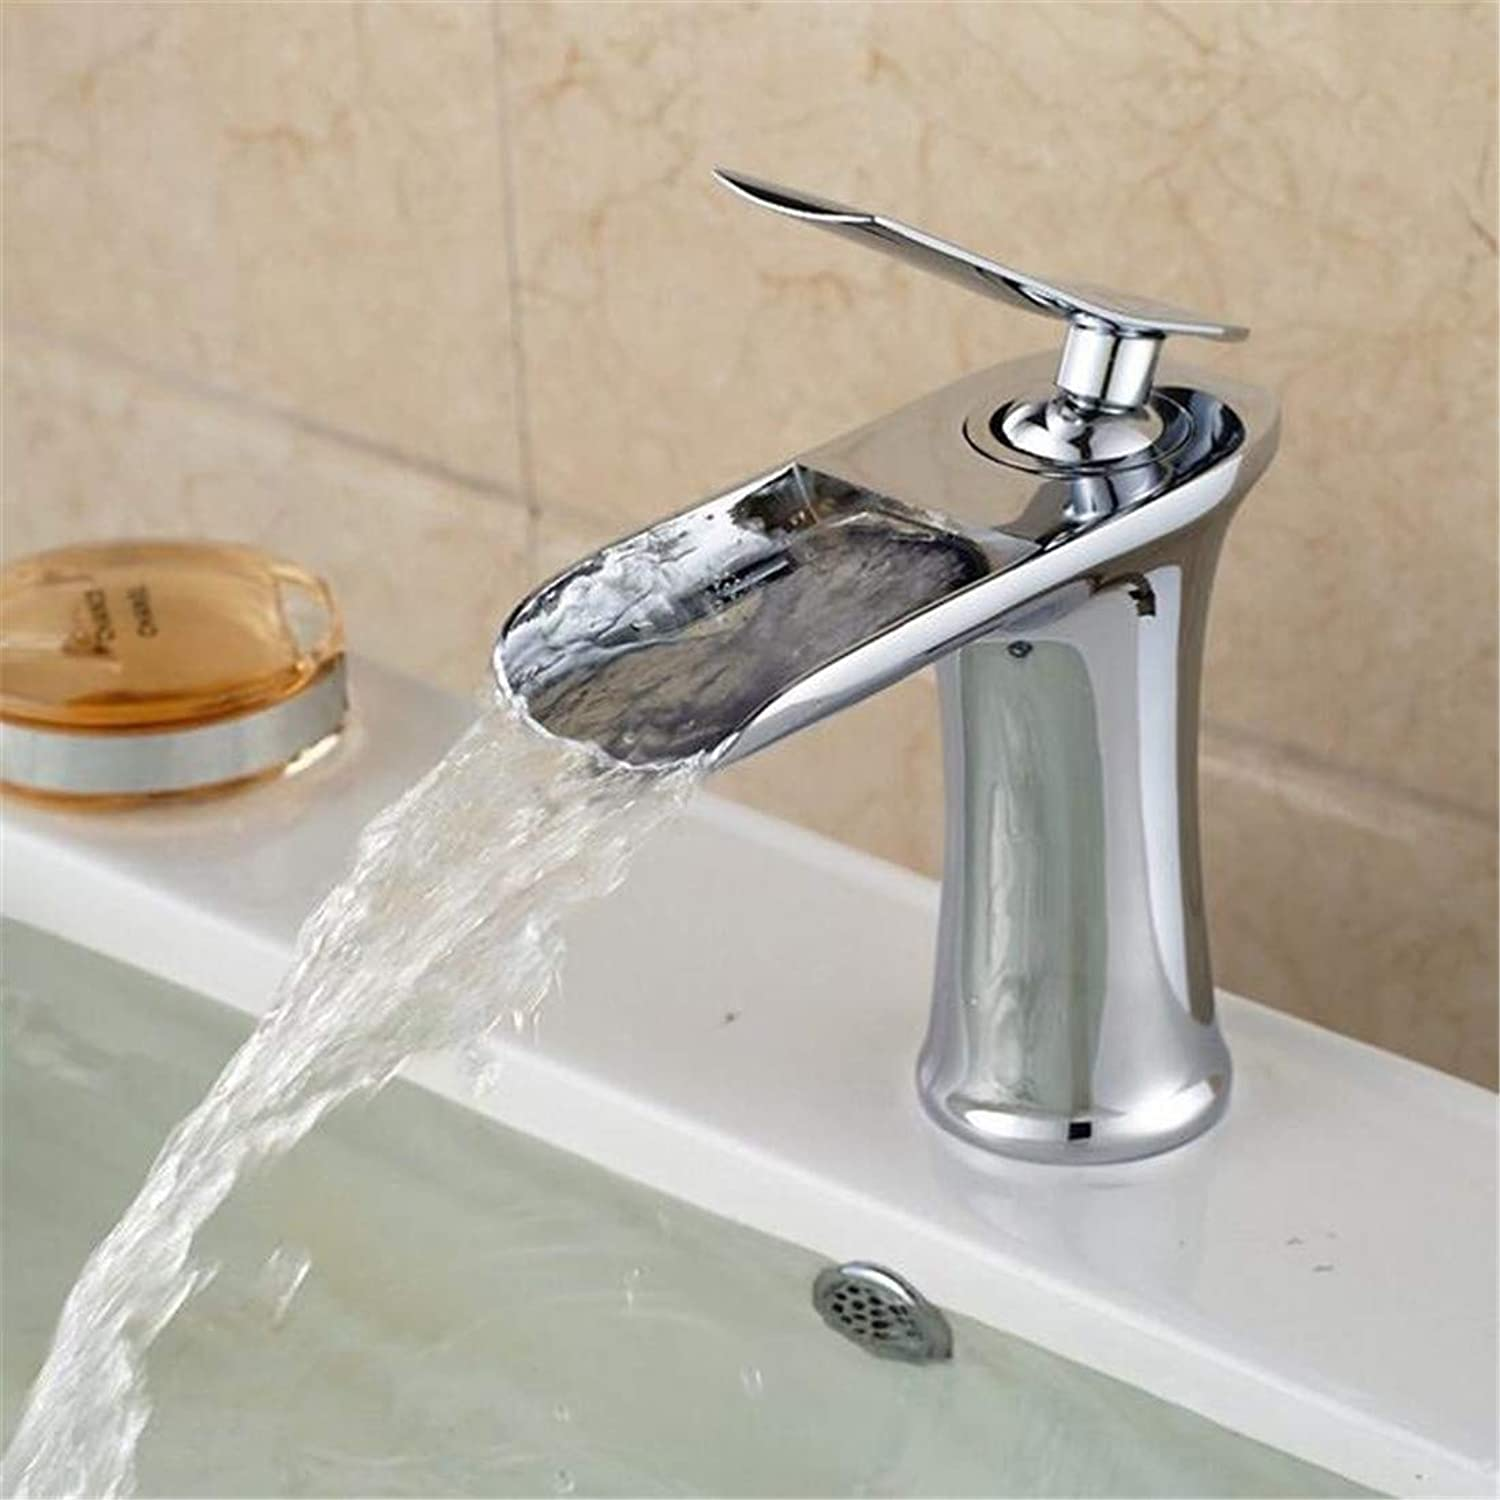 Chrome Kitchen Sink Tapchorme Polish Basin Tap Deck Mounted Bathroom Vanity Sink Tap Hot&Cold Faucet FreeShipping